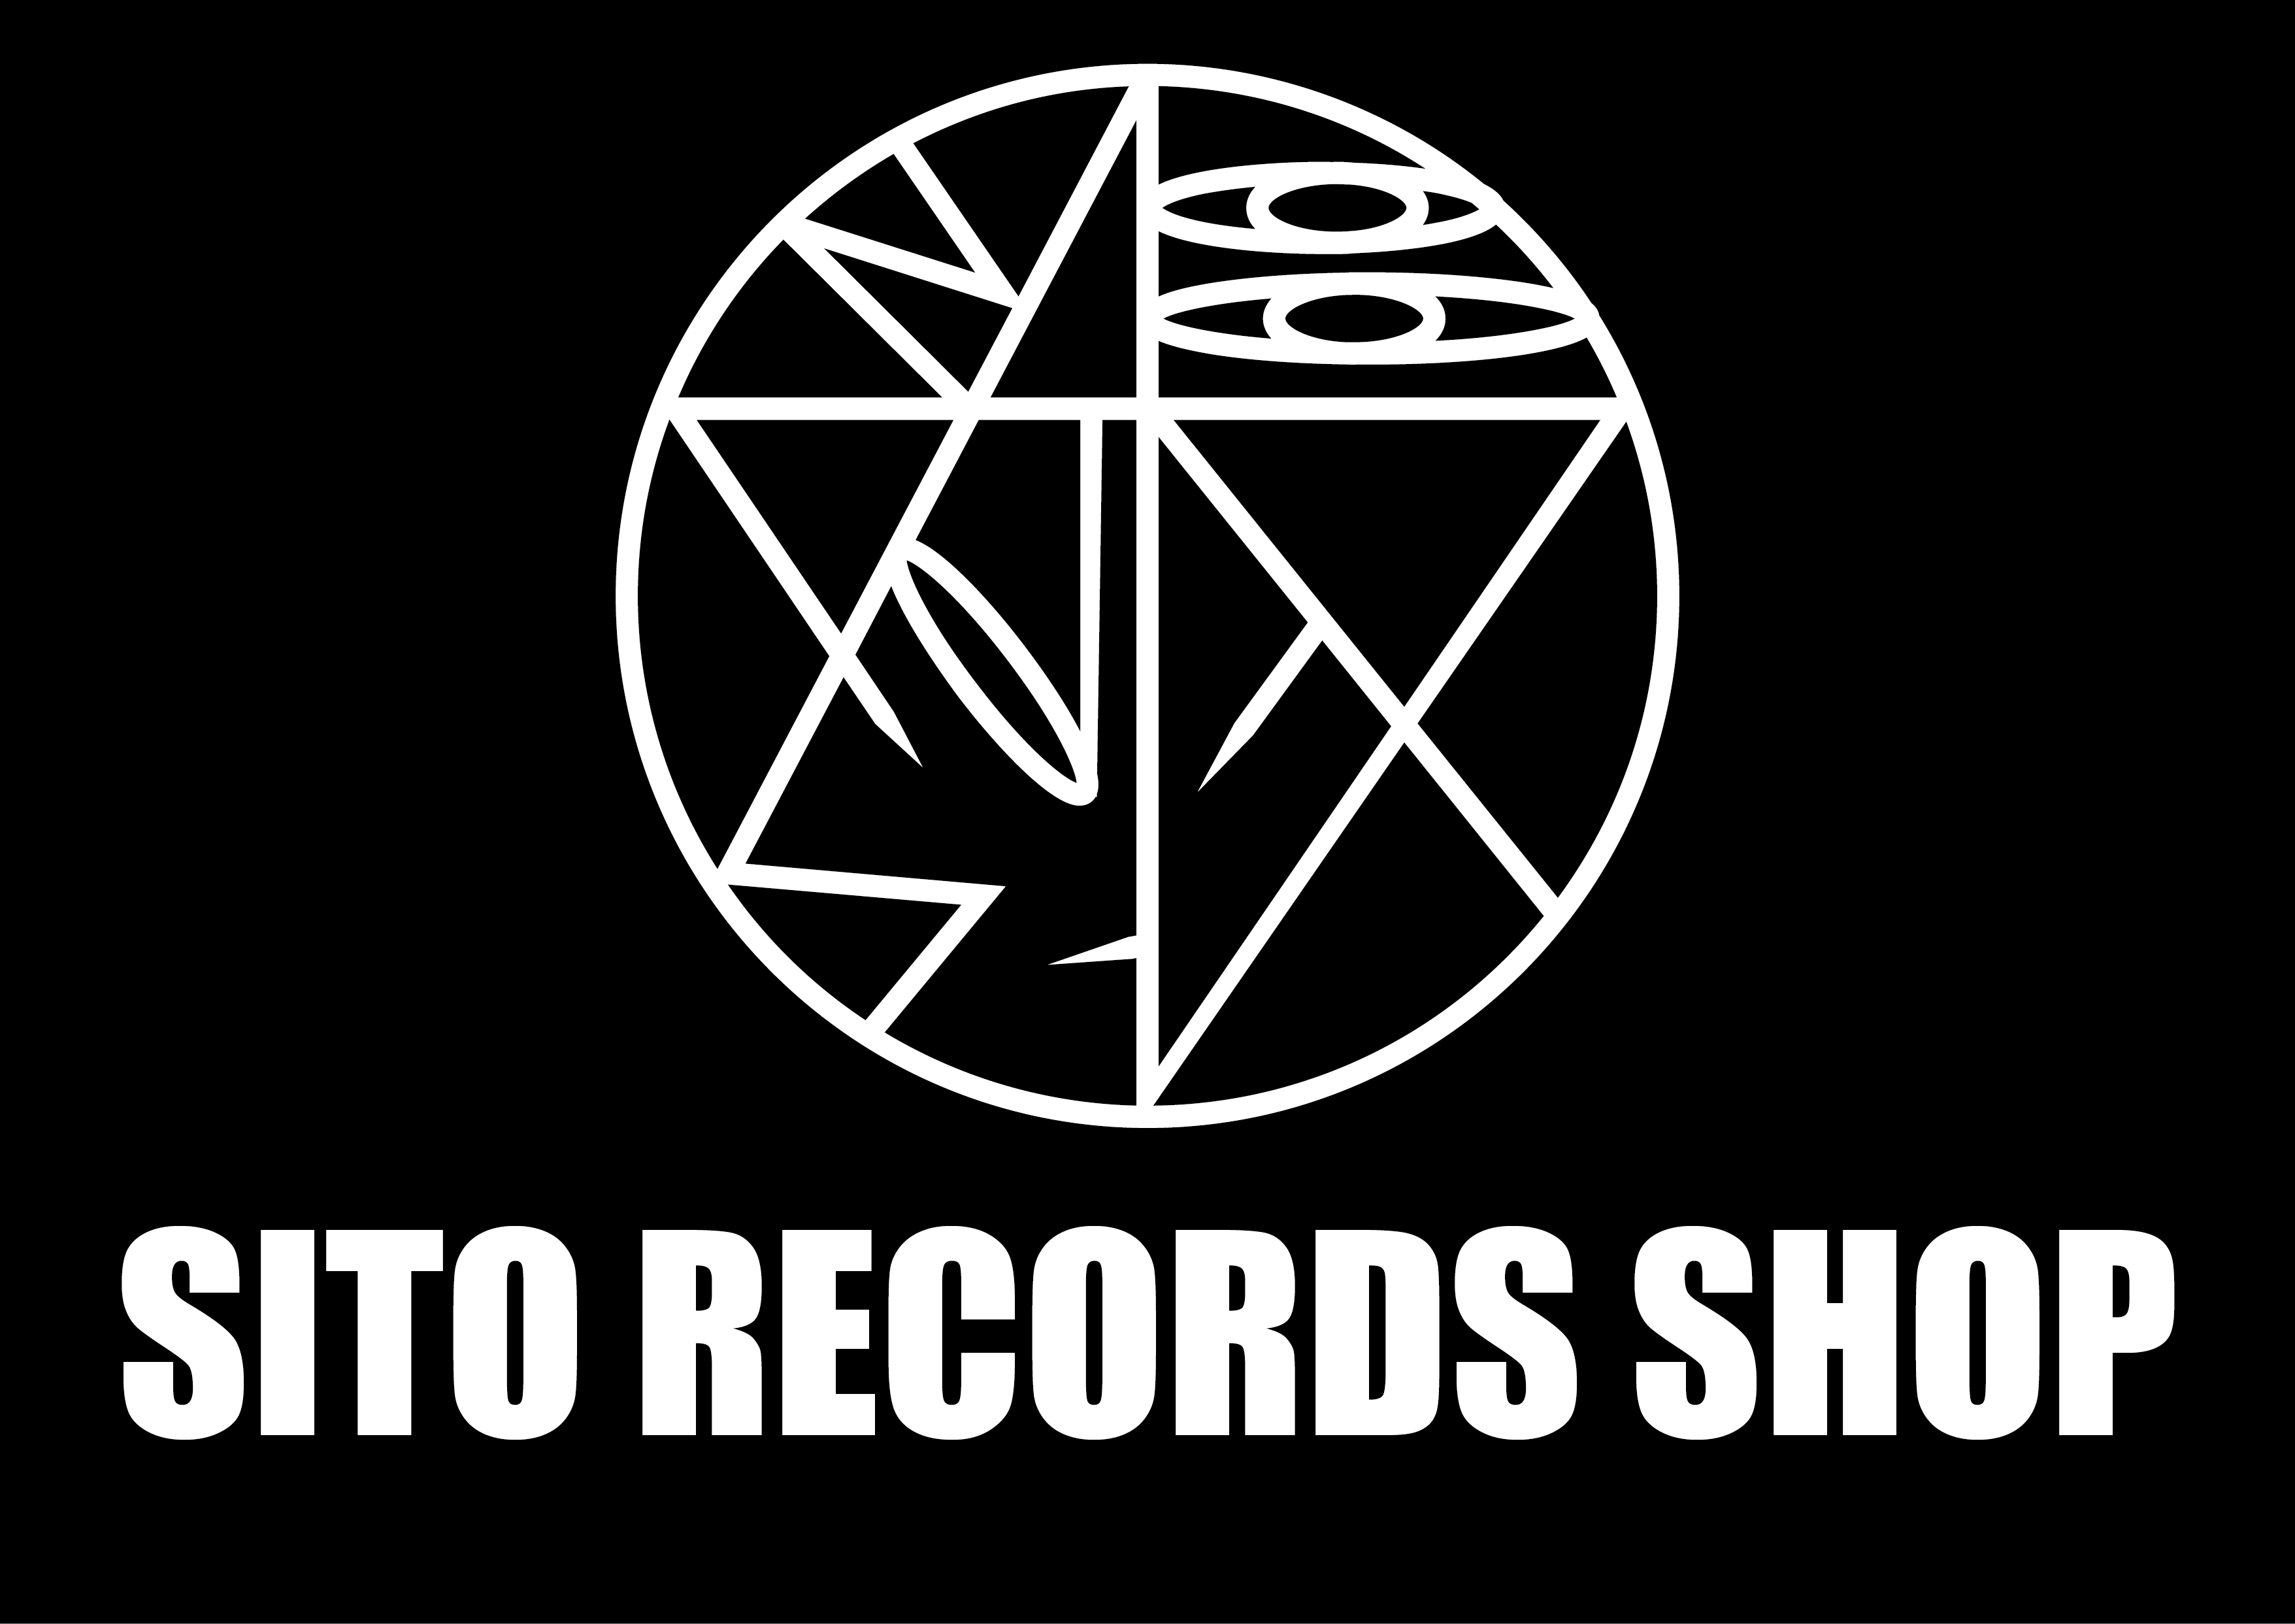 SITO RECORDS SHOP